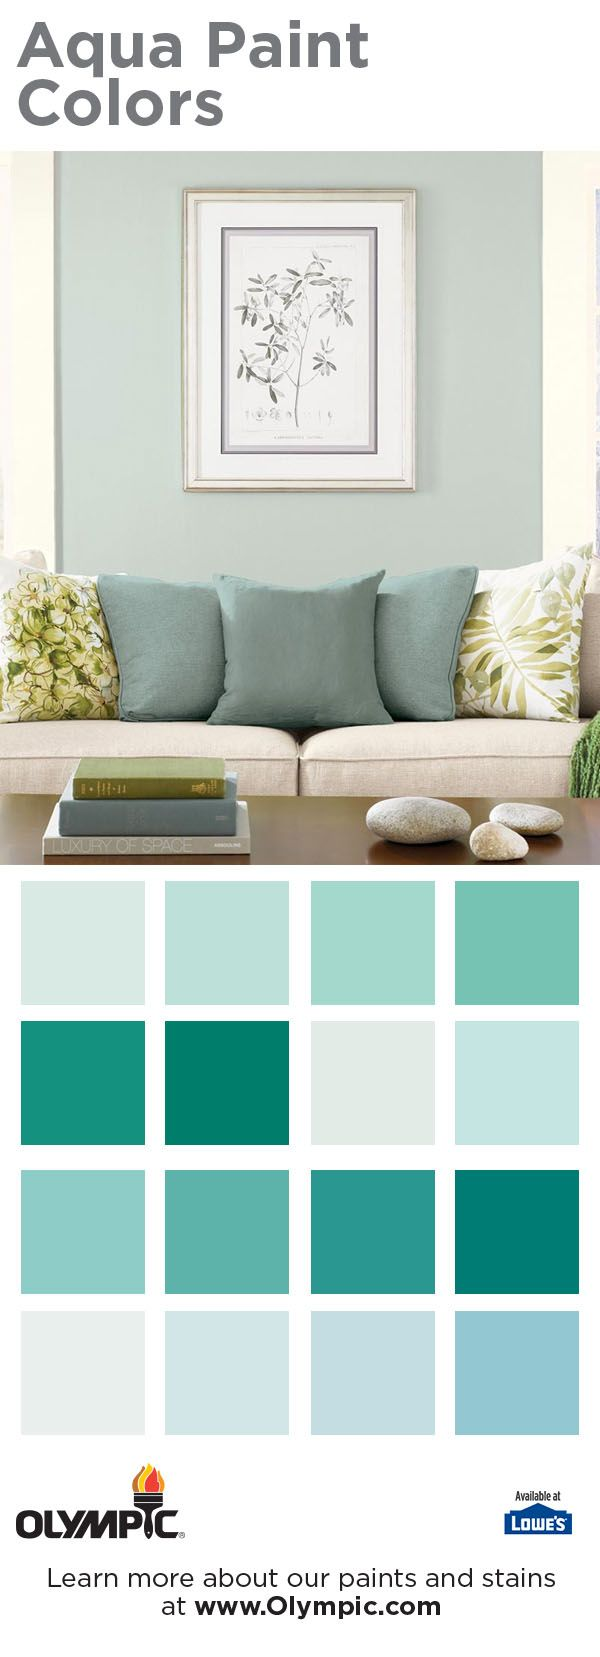 Aqua Paint Colors By Olympic Paint Create A Space Thatu0027s Perfect For  Creativity And Relaxation.